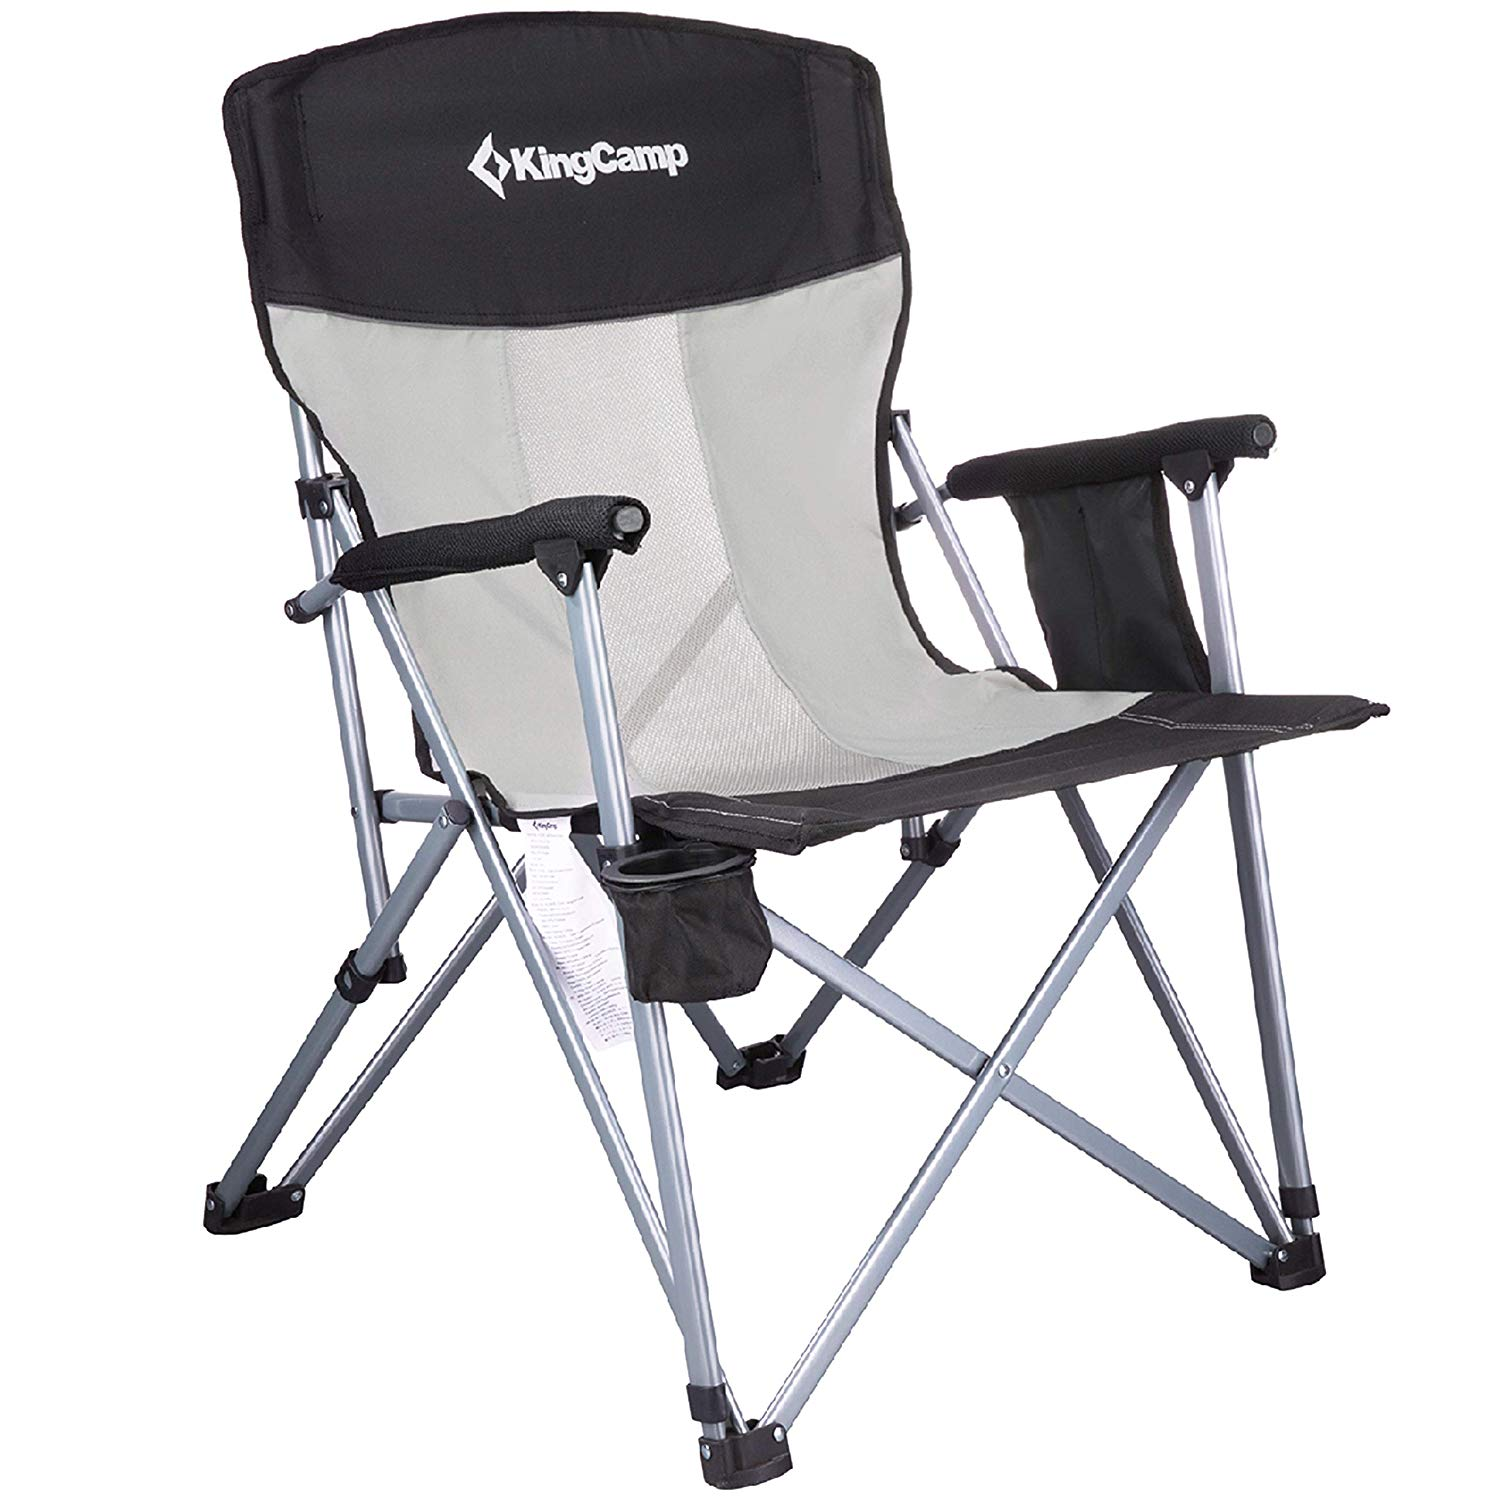 KingCamp Camping Chair Mesh High Back Ergonom with Cup Holder Armrest Pocket Headrest Breathable Folding Portable Oversize Heavy Duty